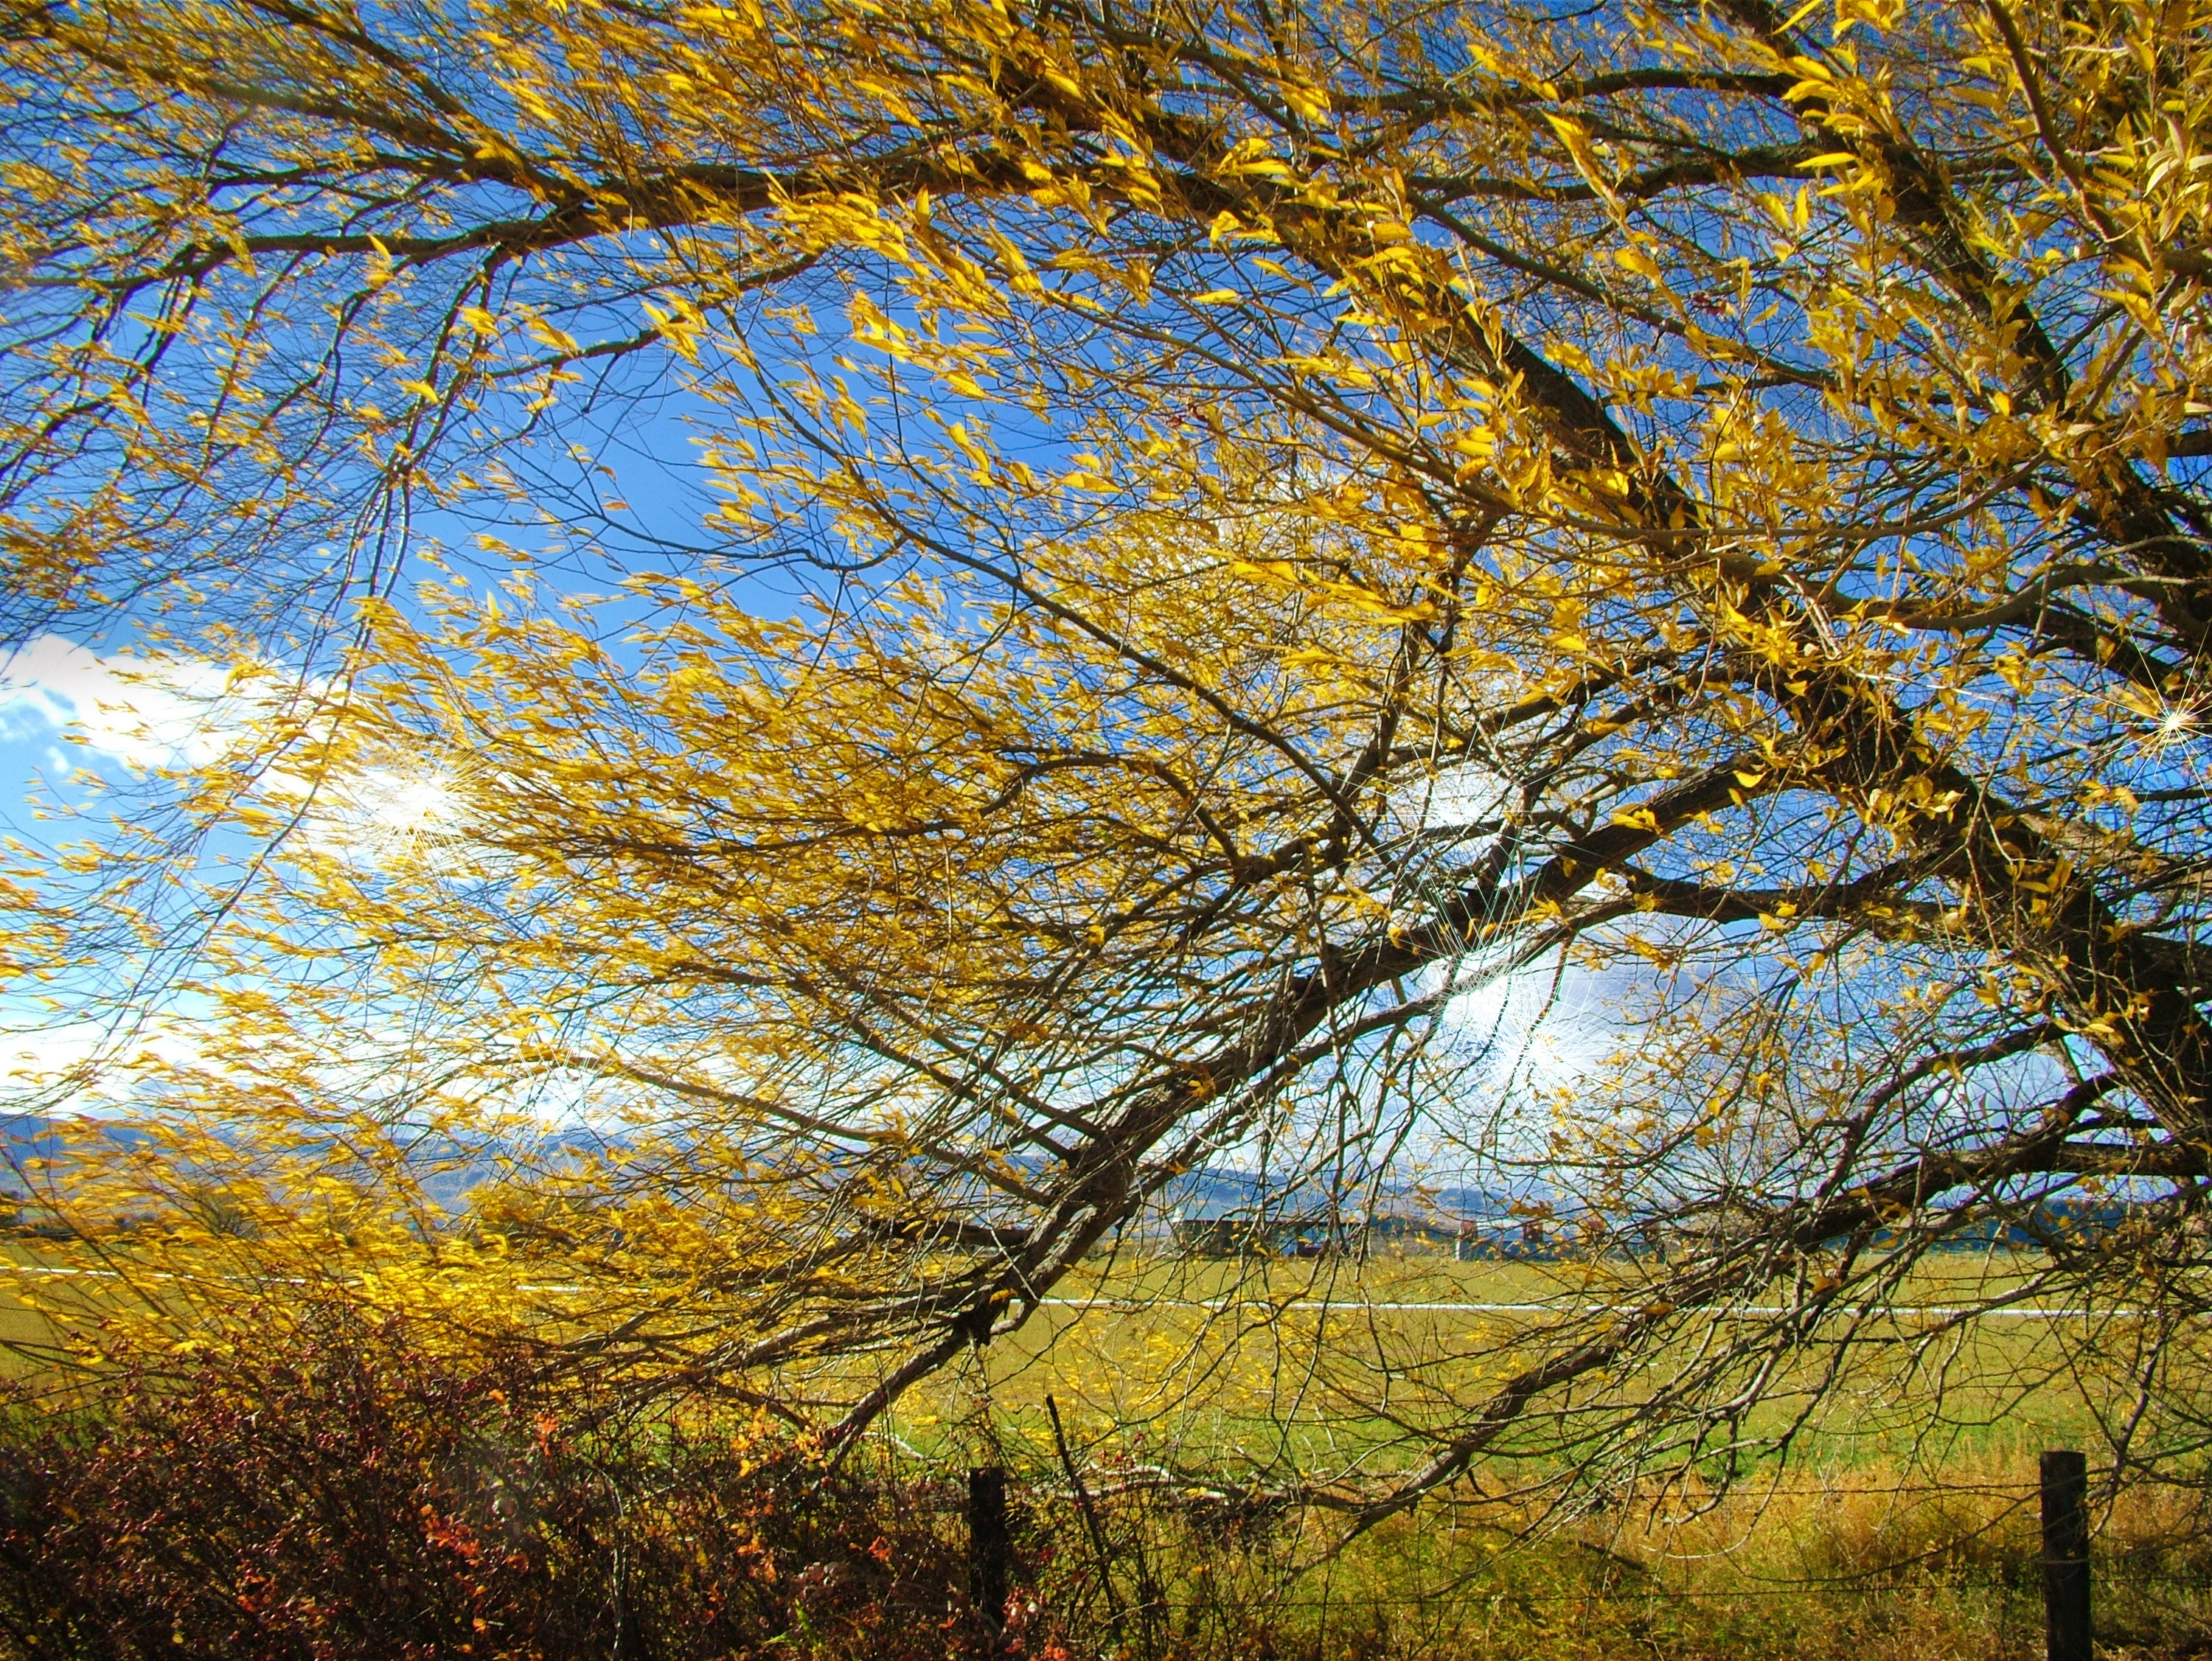 Photo of a yellow leaf tree